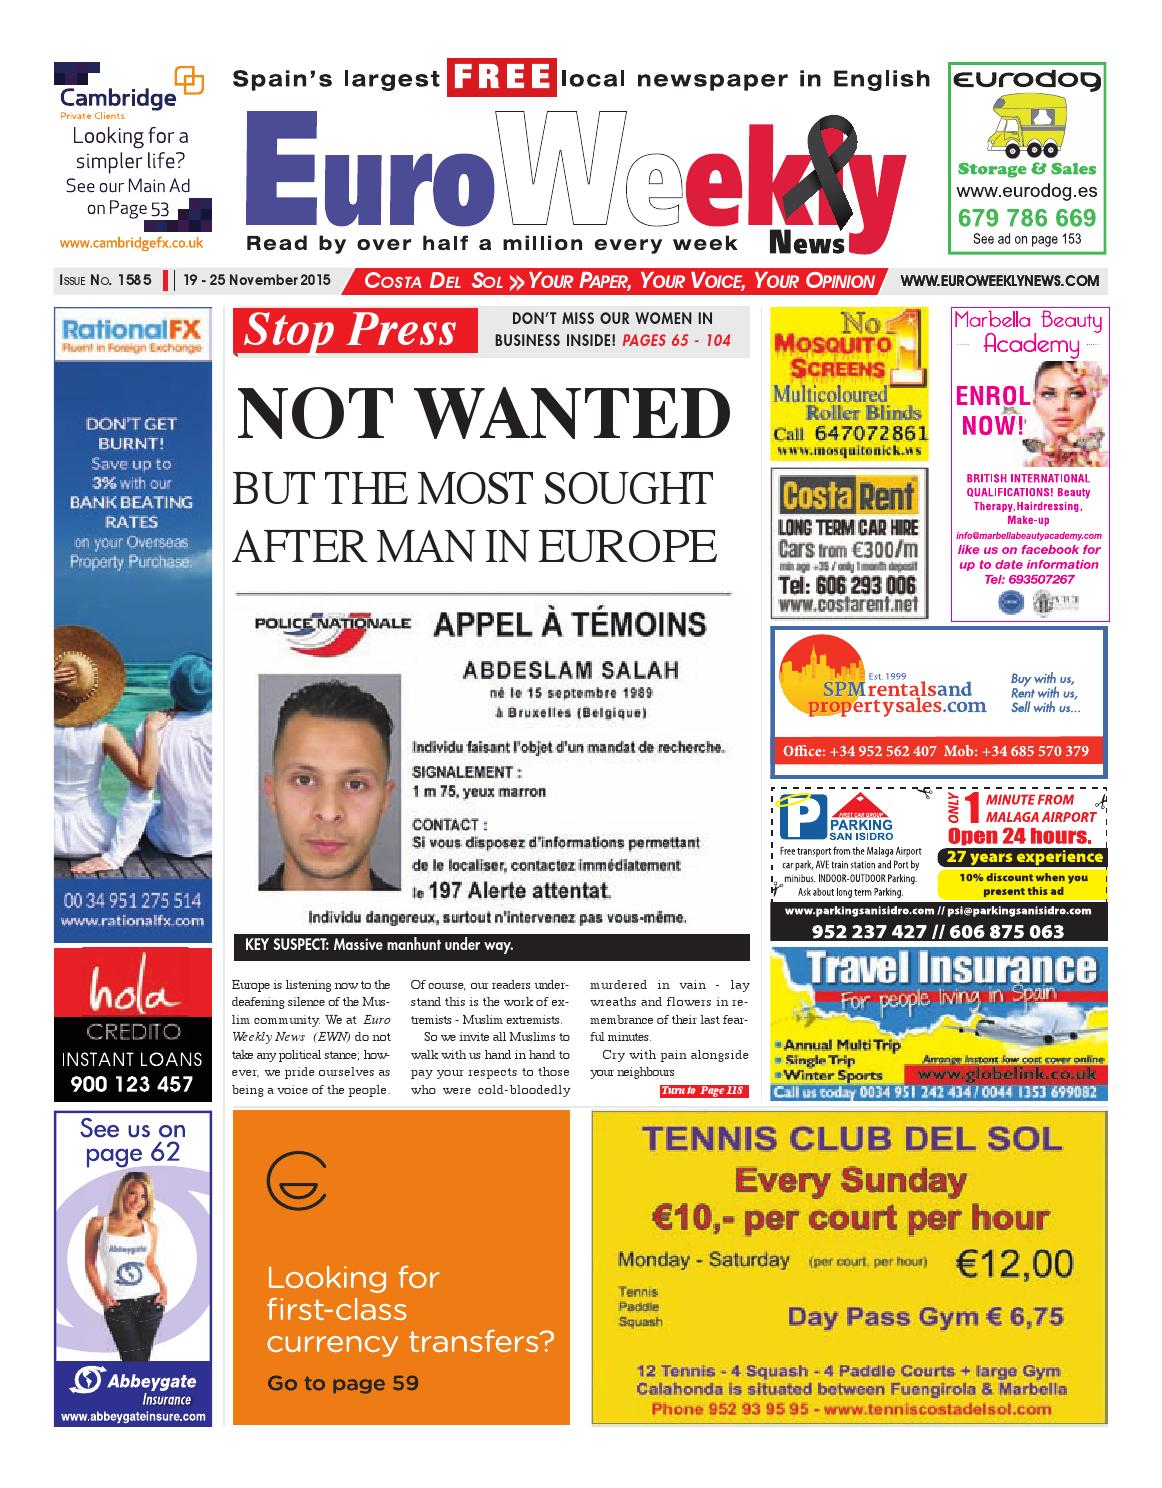 Euro Weekly News - Costa del Sol 19 - 25 November 2015 Issue 1585 by ...